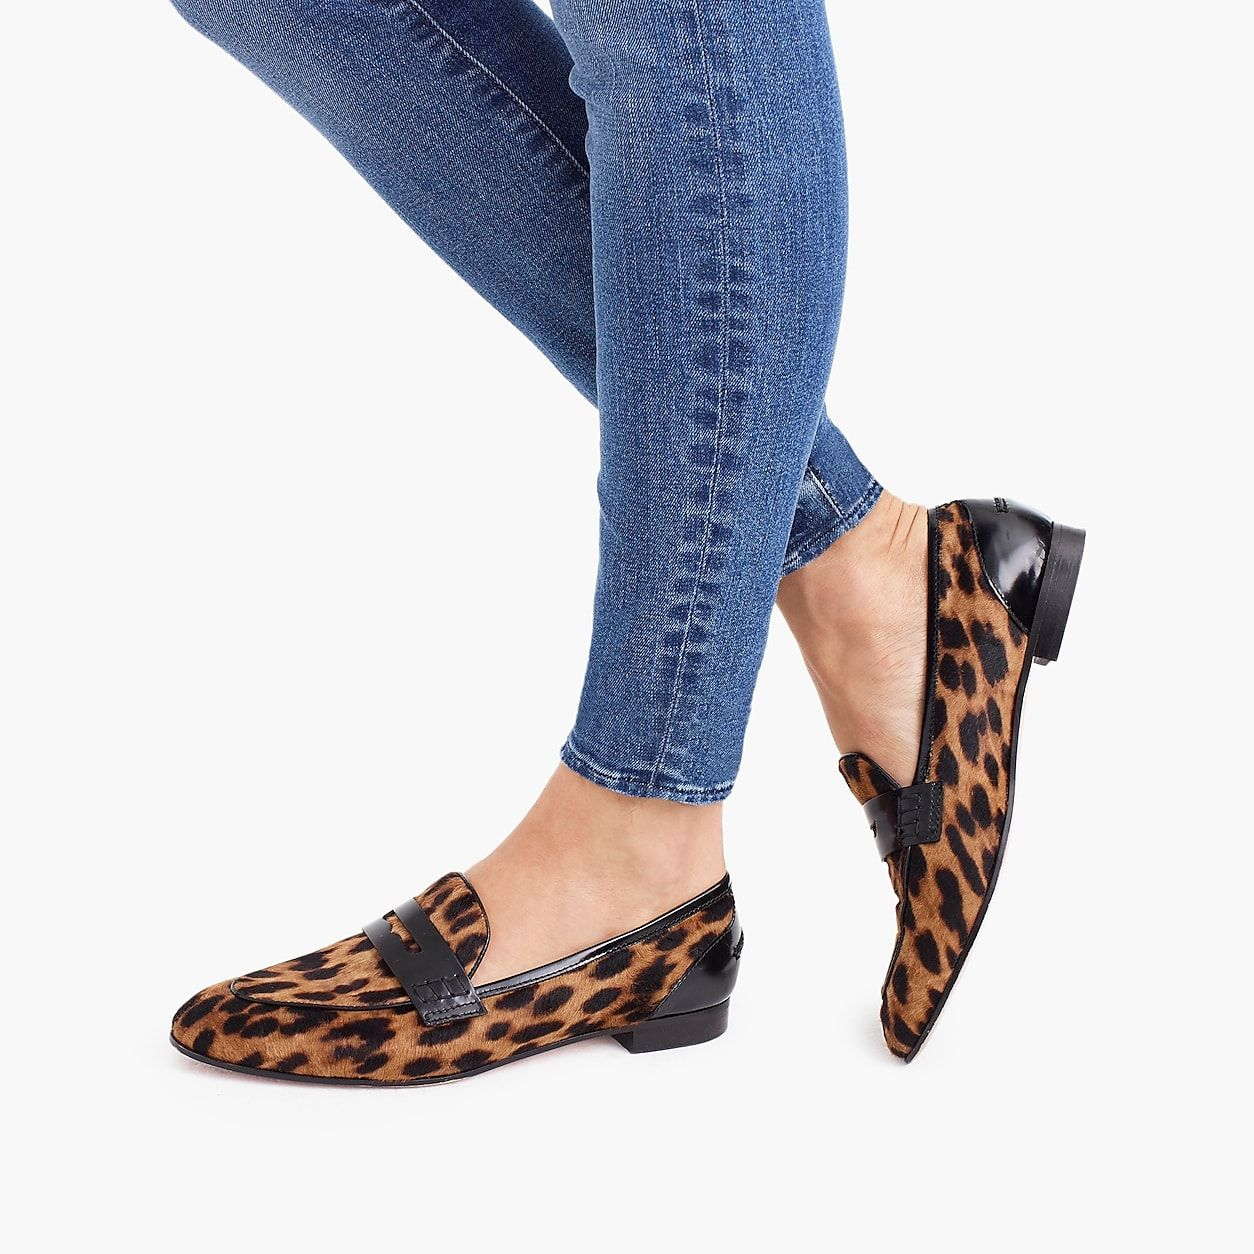 76698bf3e42 Academy Penny Loafers In Leopard Calf Hair